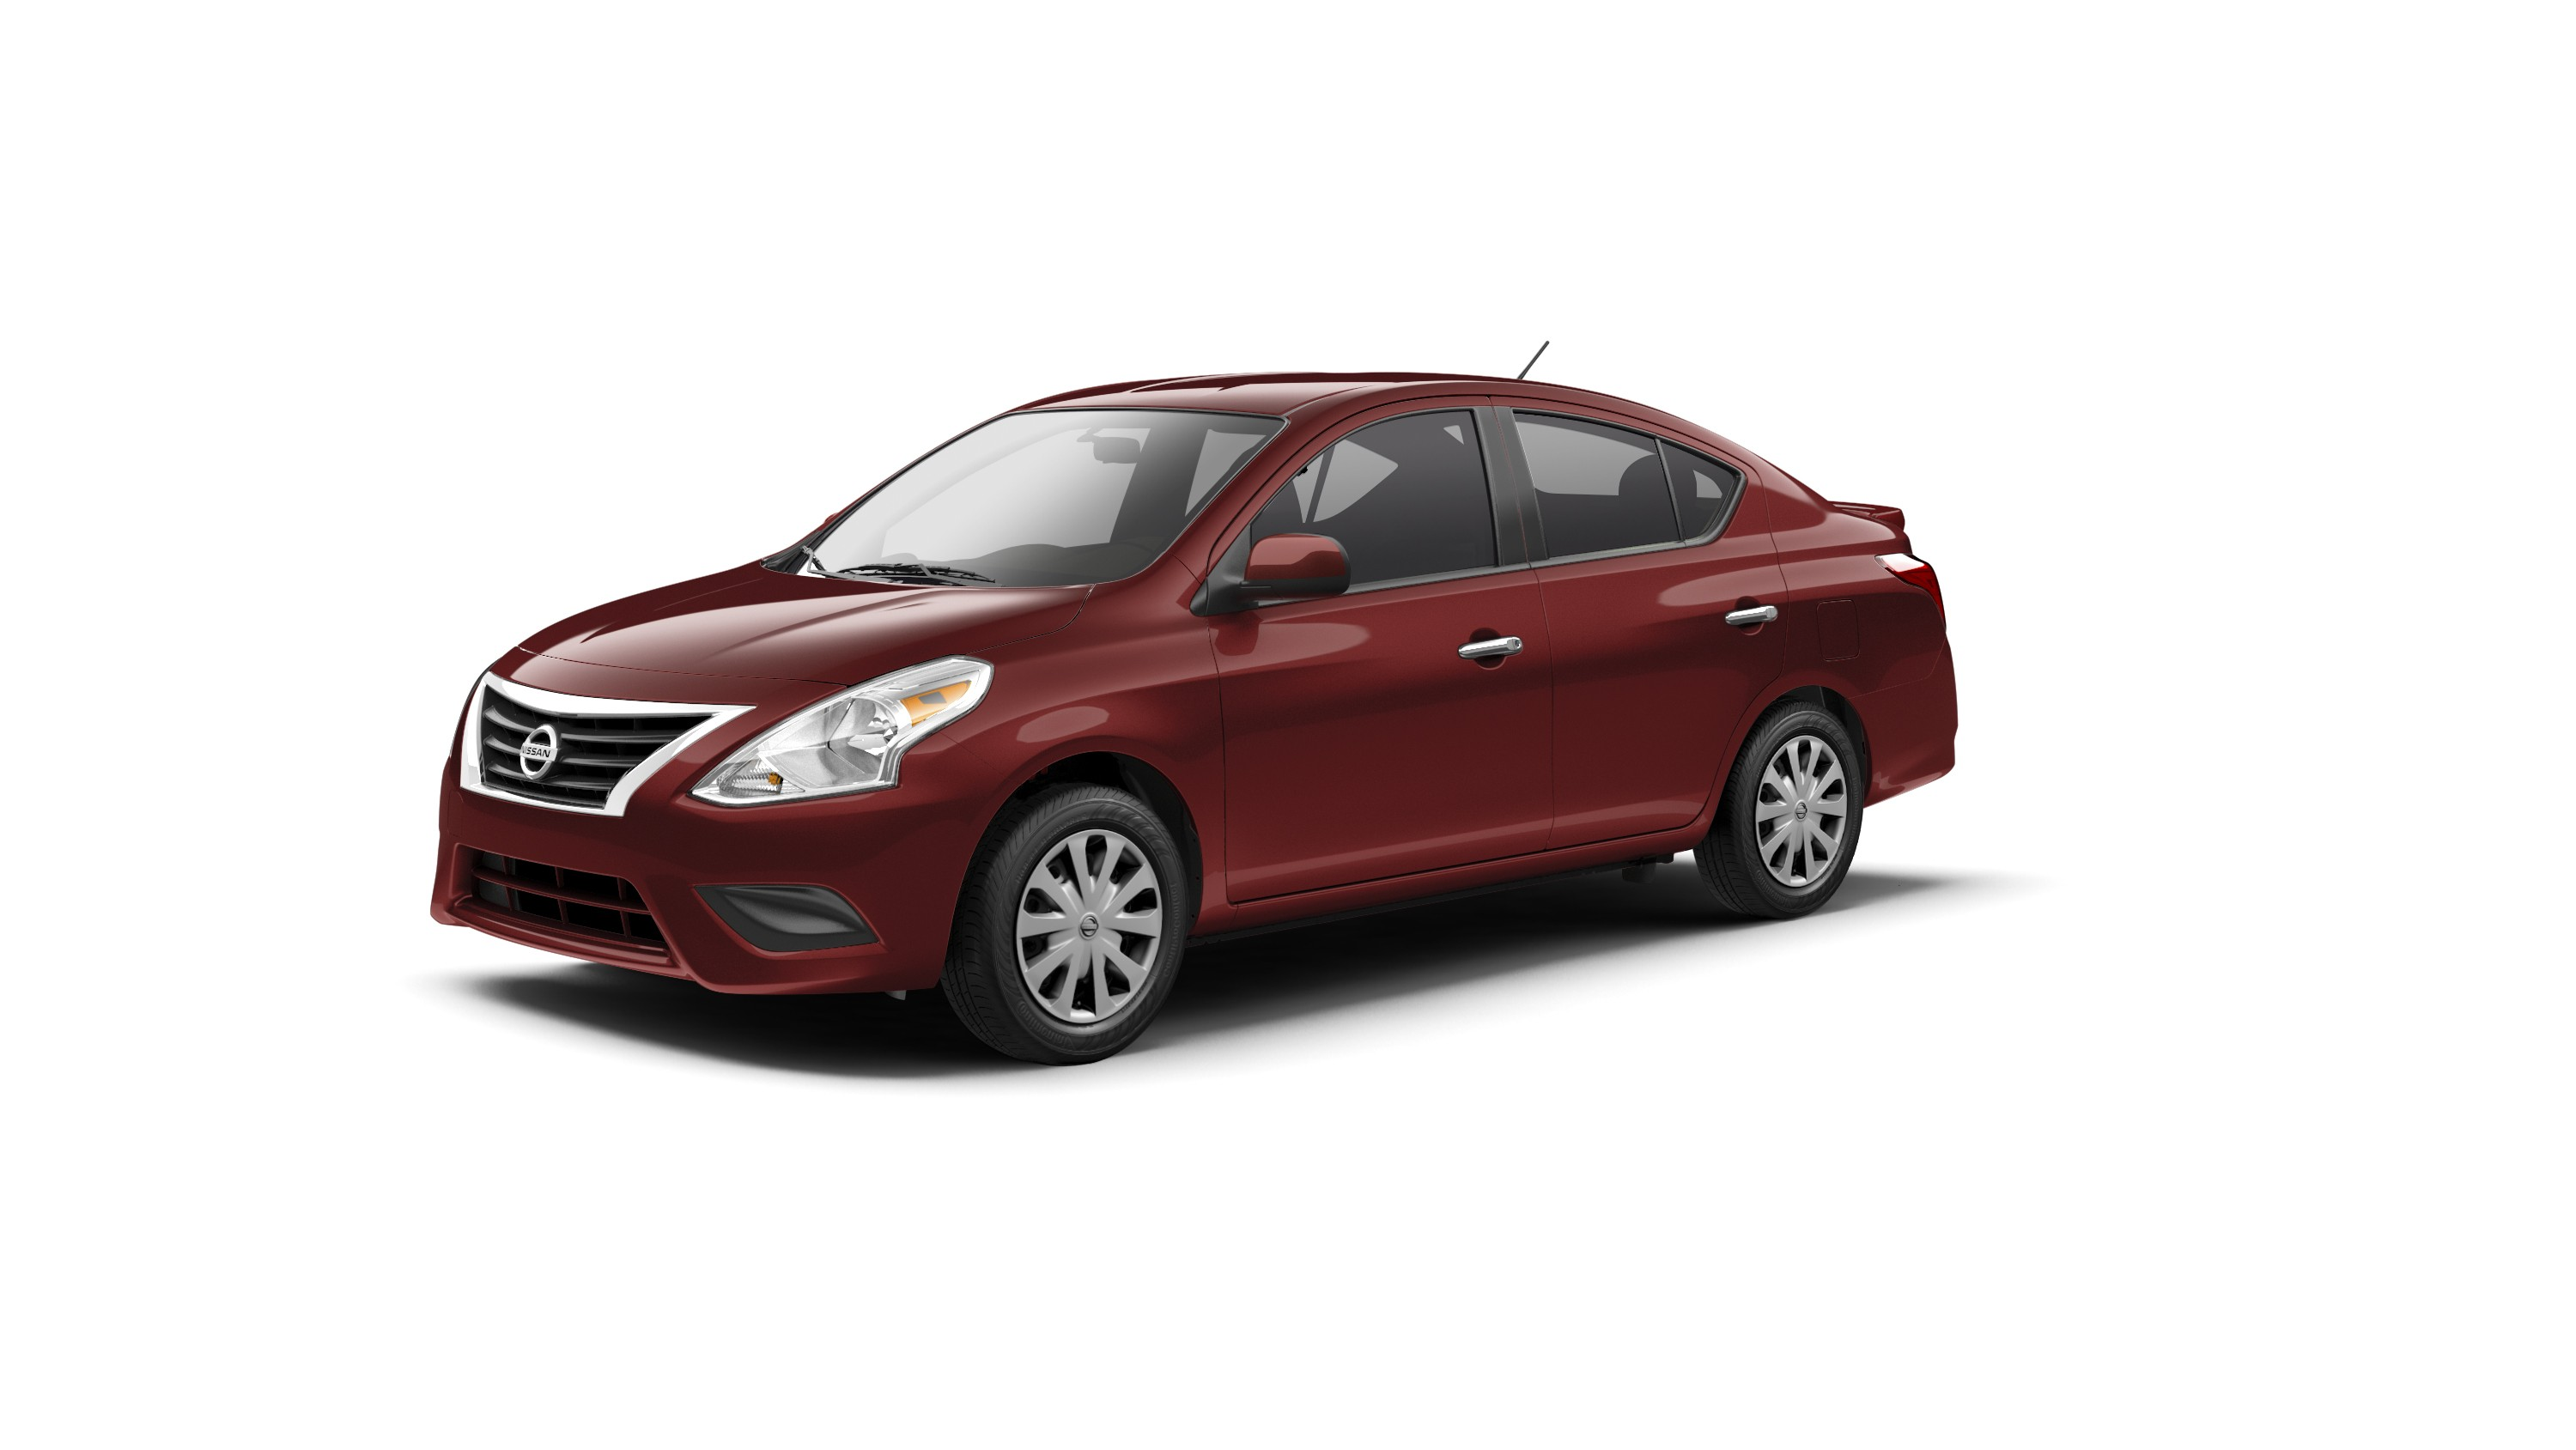 nissan consumer front note versa category and anniversary img edited car exam